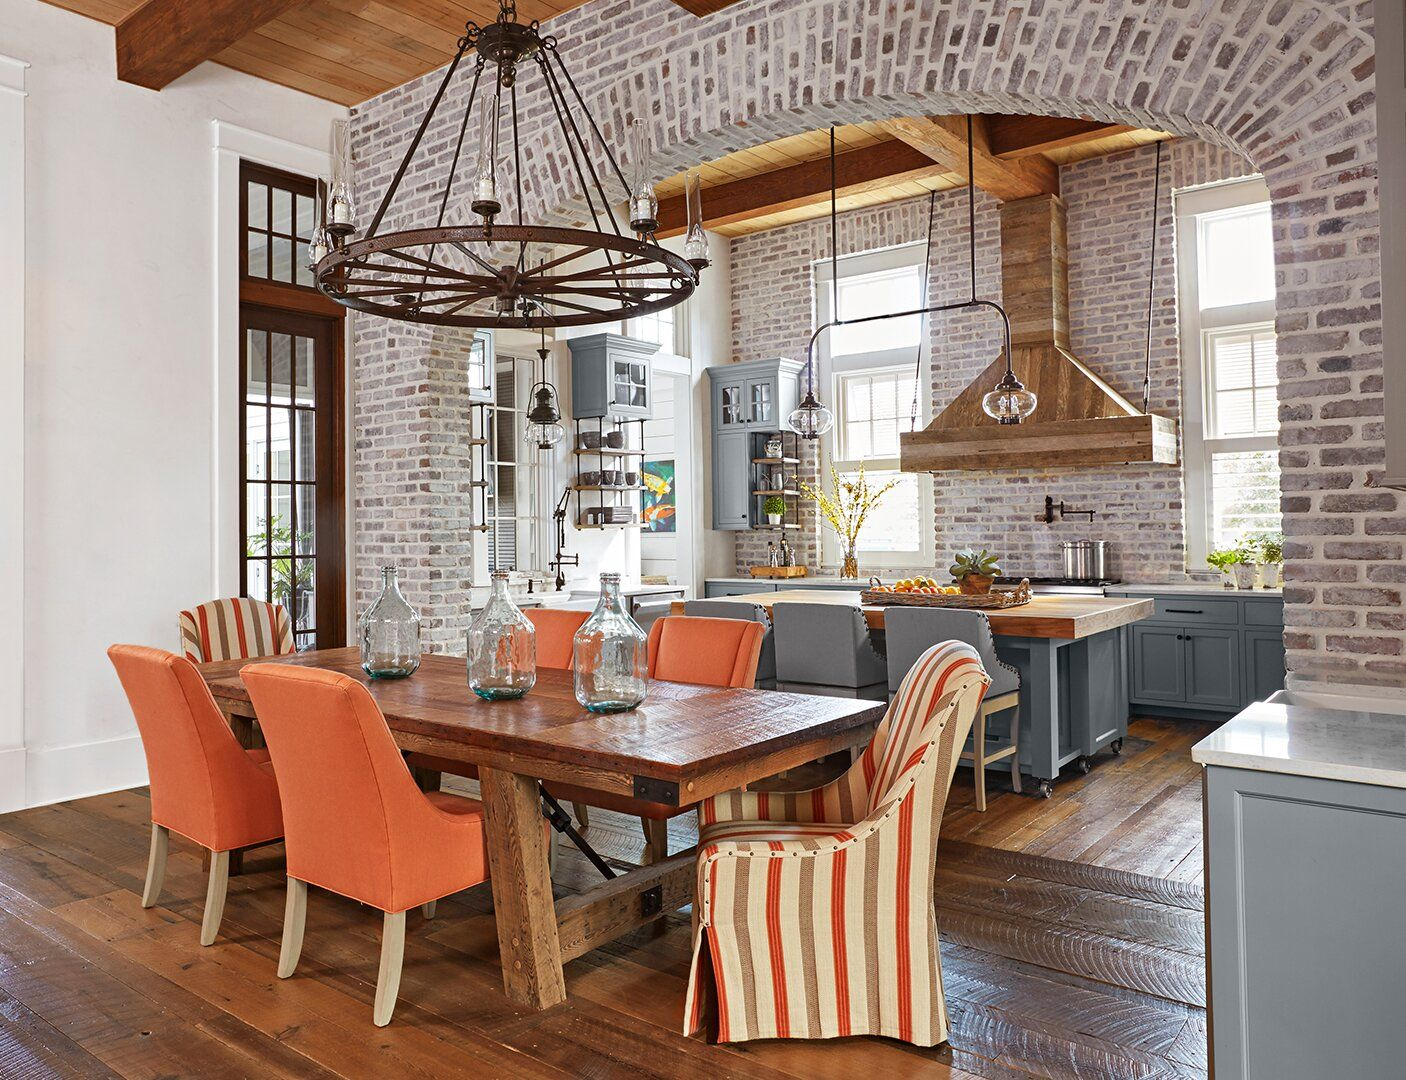 The Top 25 Kitchen Color Schemes for a Look You'll Love ...